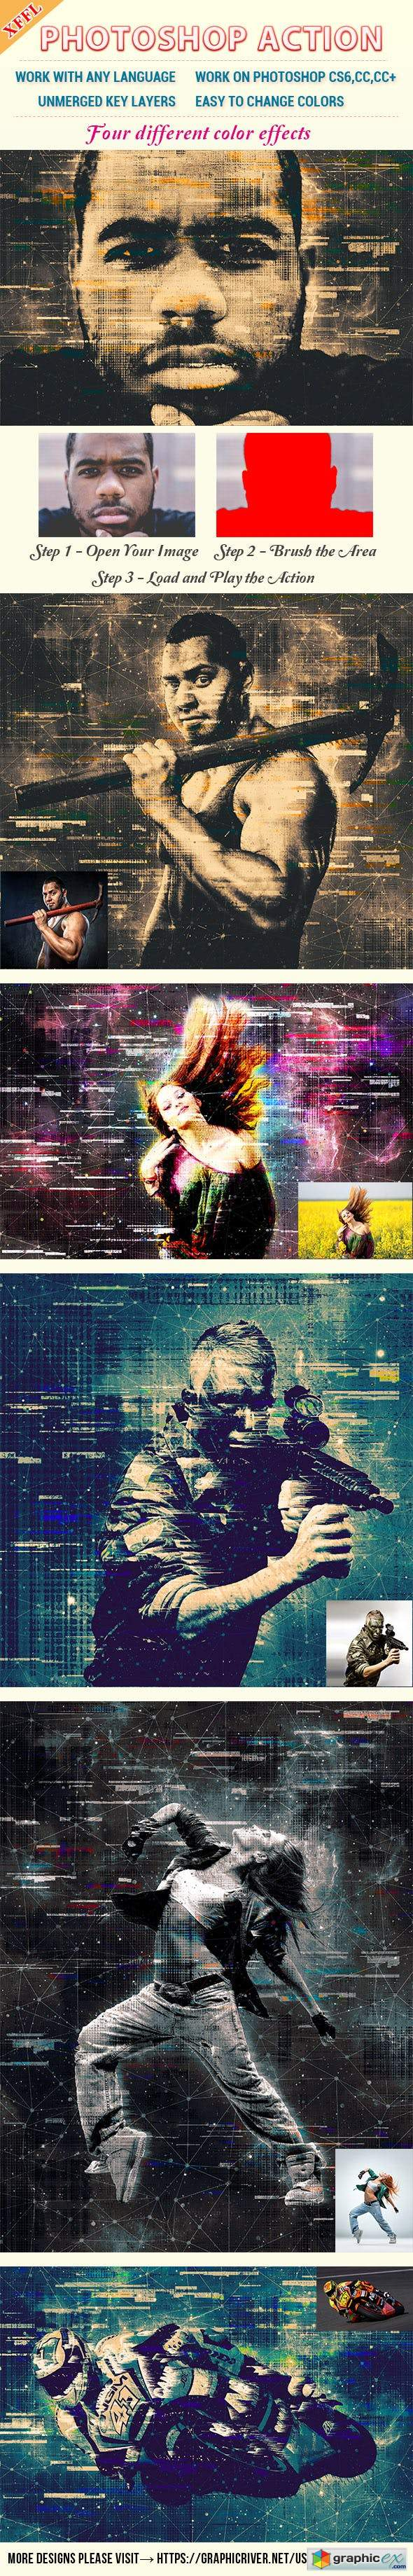 Glitch Mottled Effect Photoshop Action